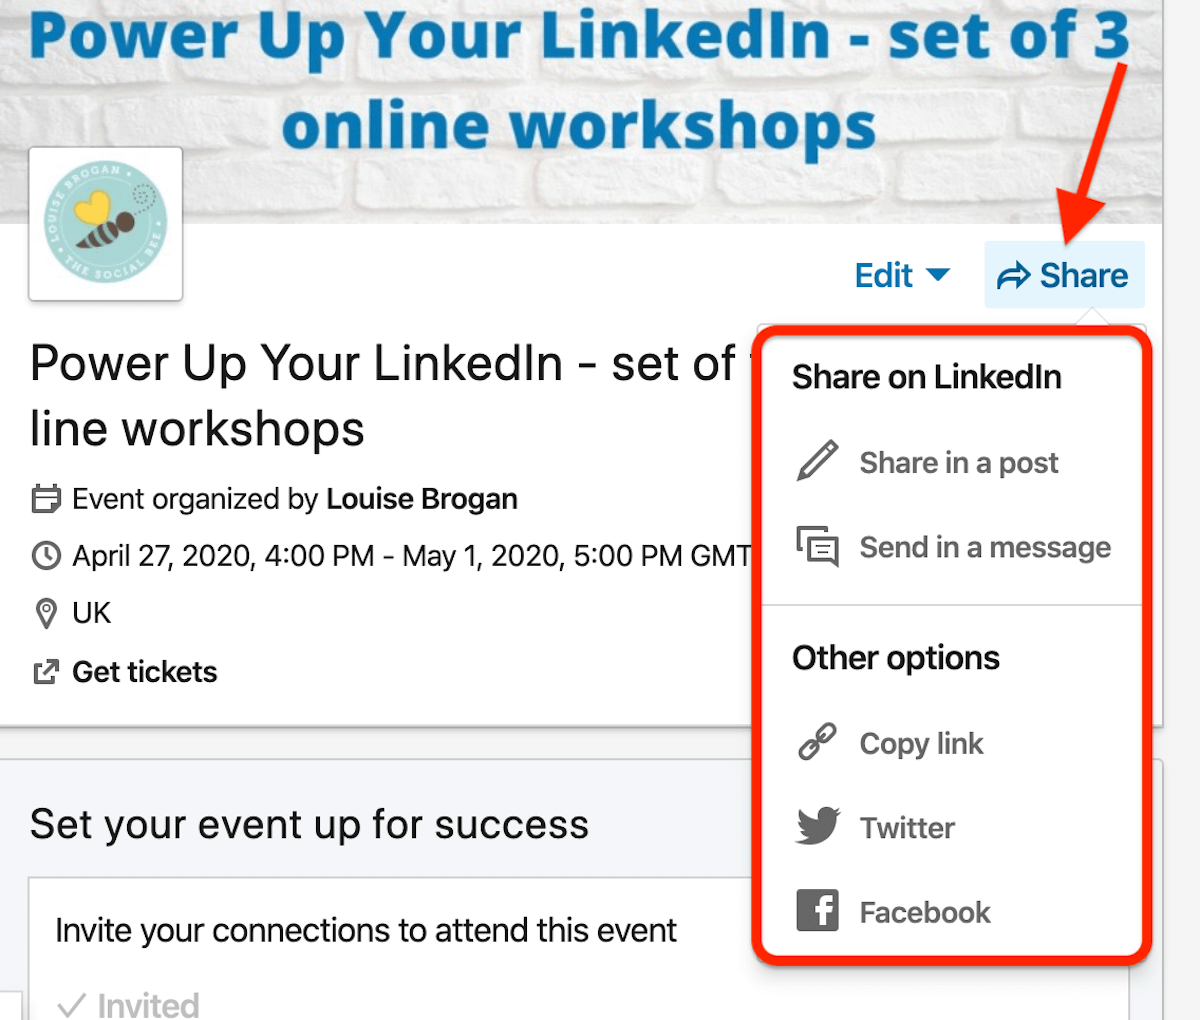 options for sharing LinkedIn event outside of feed